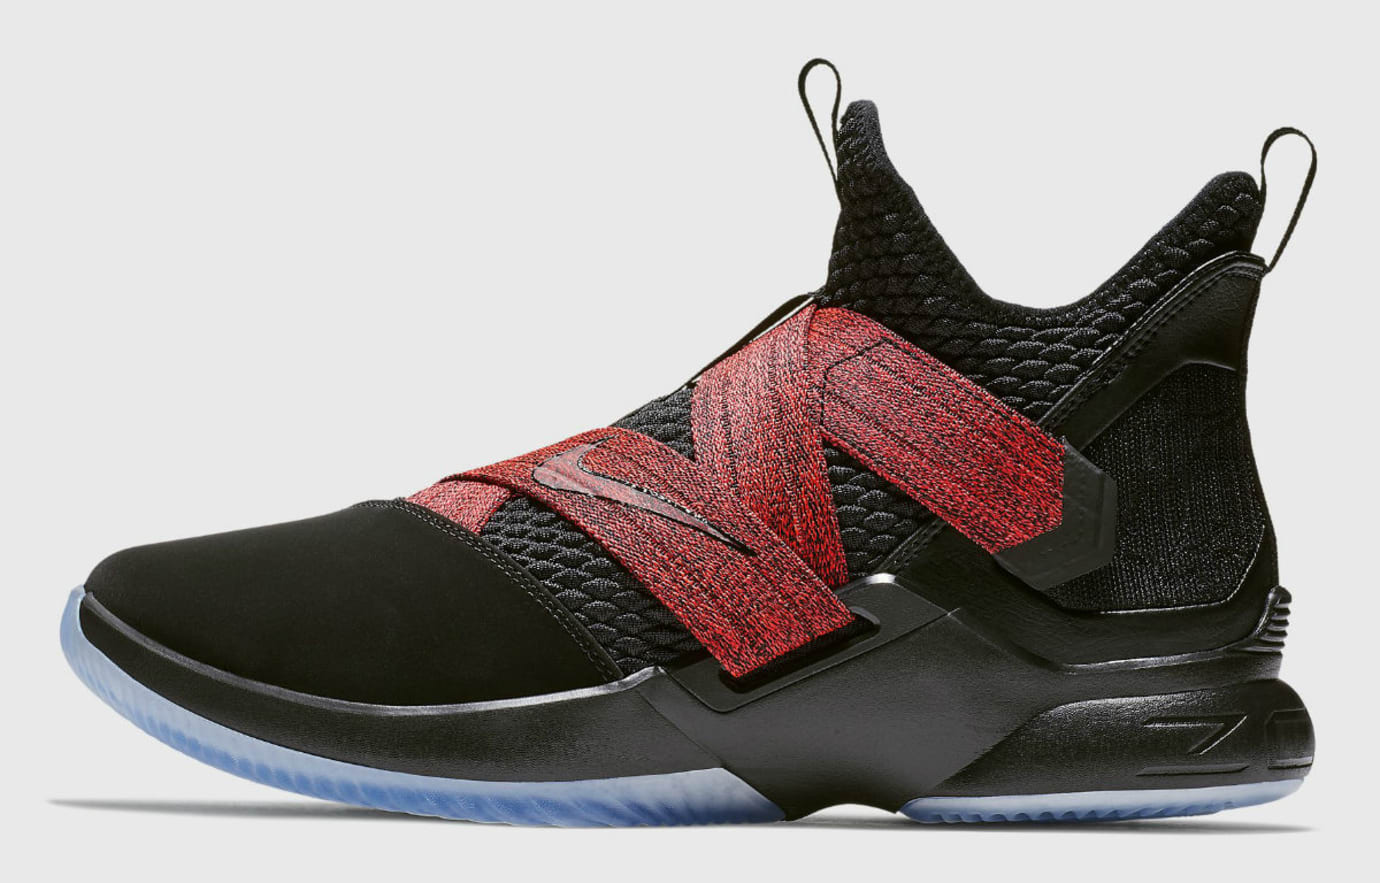 Nike LeBron Soldier 12 XII Bred Release Date AO2609-003 Profile